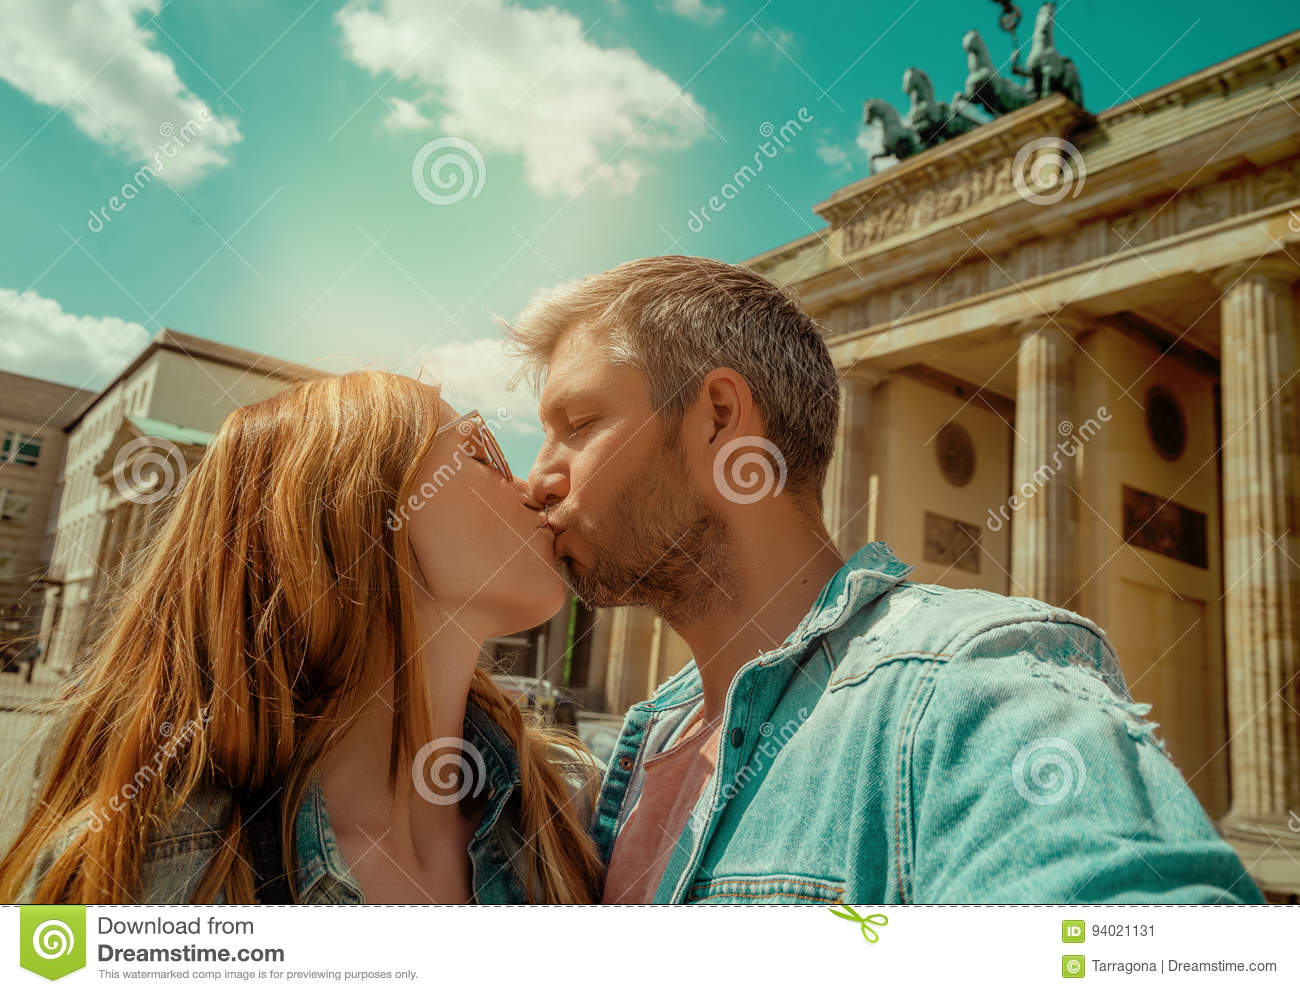 Couples de touristes à Berlin